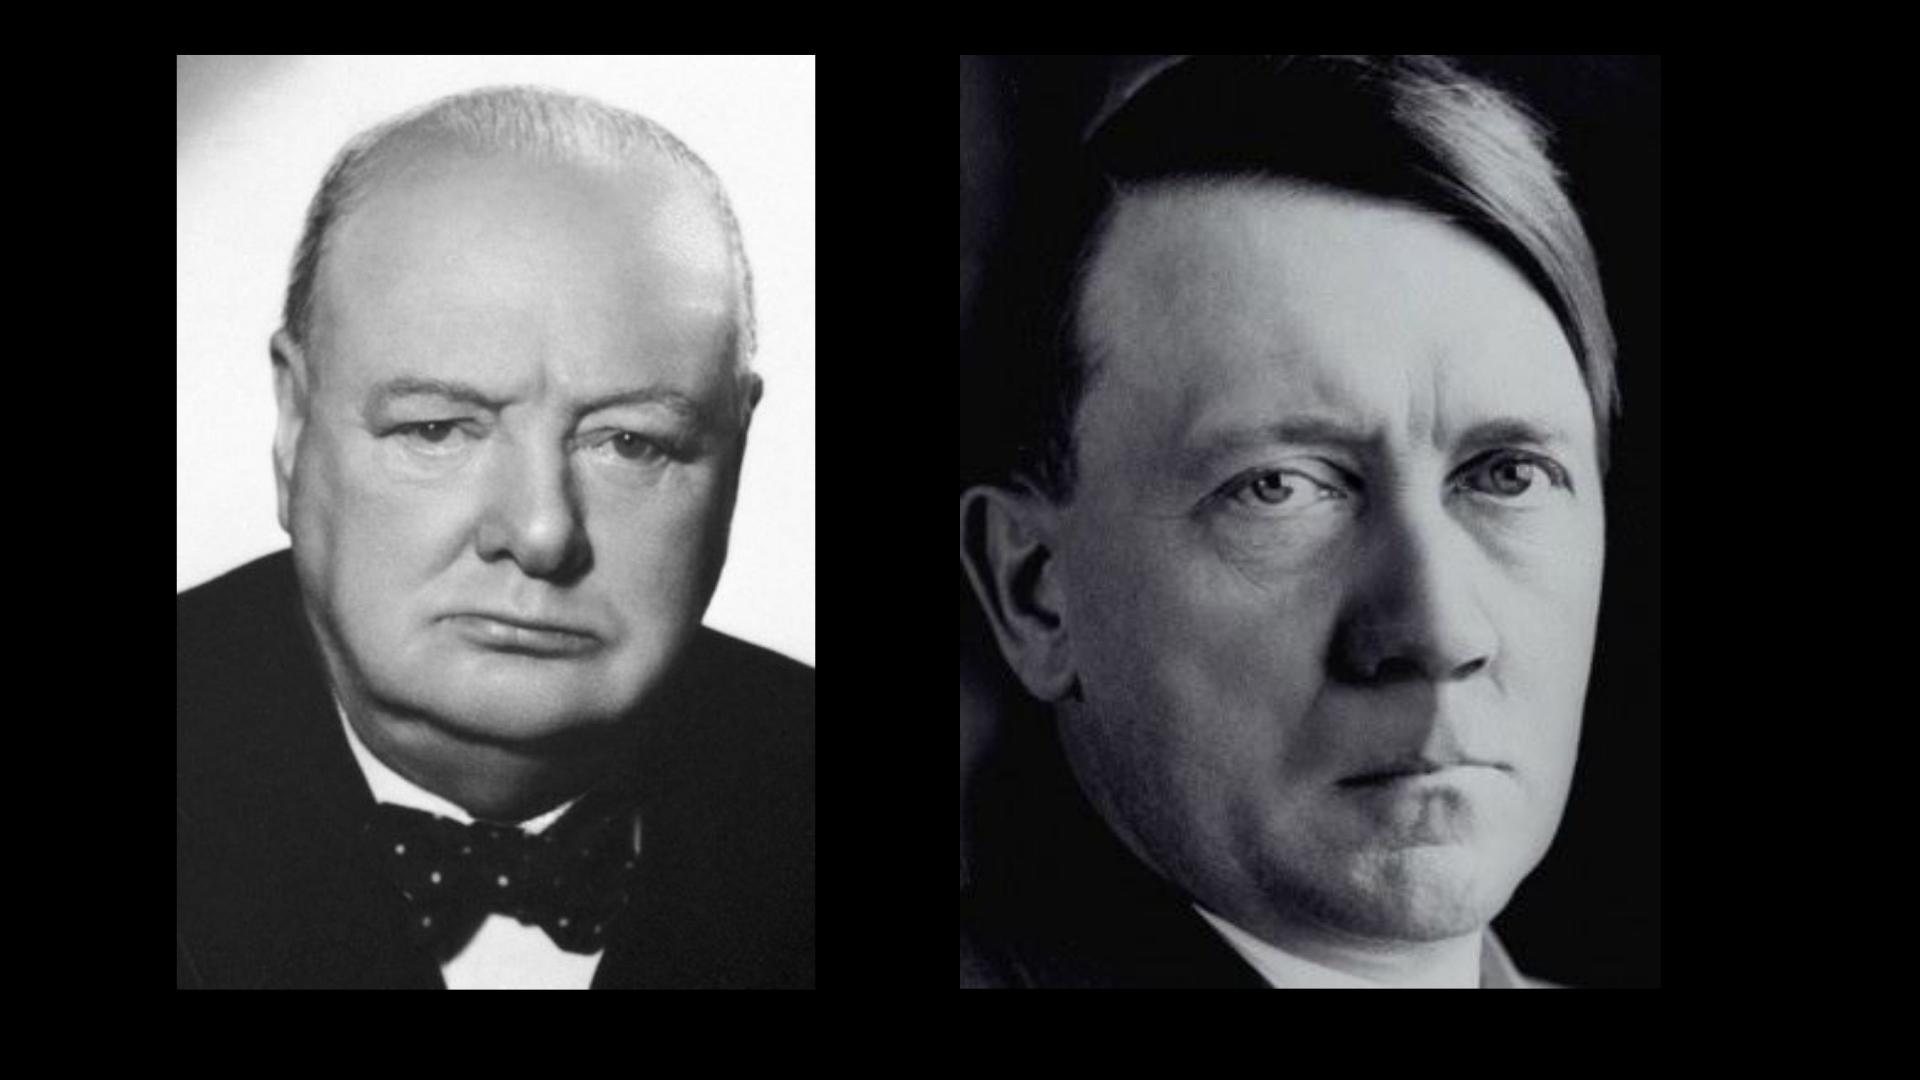 Looking for Winston Churchill & Adolph Hitler Models for Educational Video